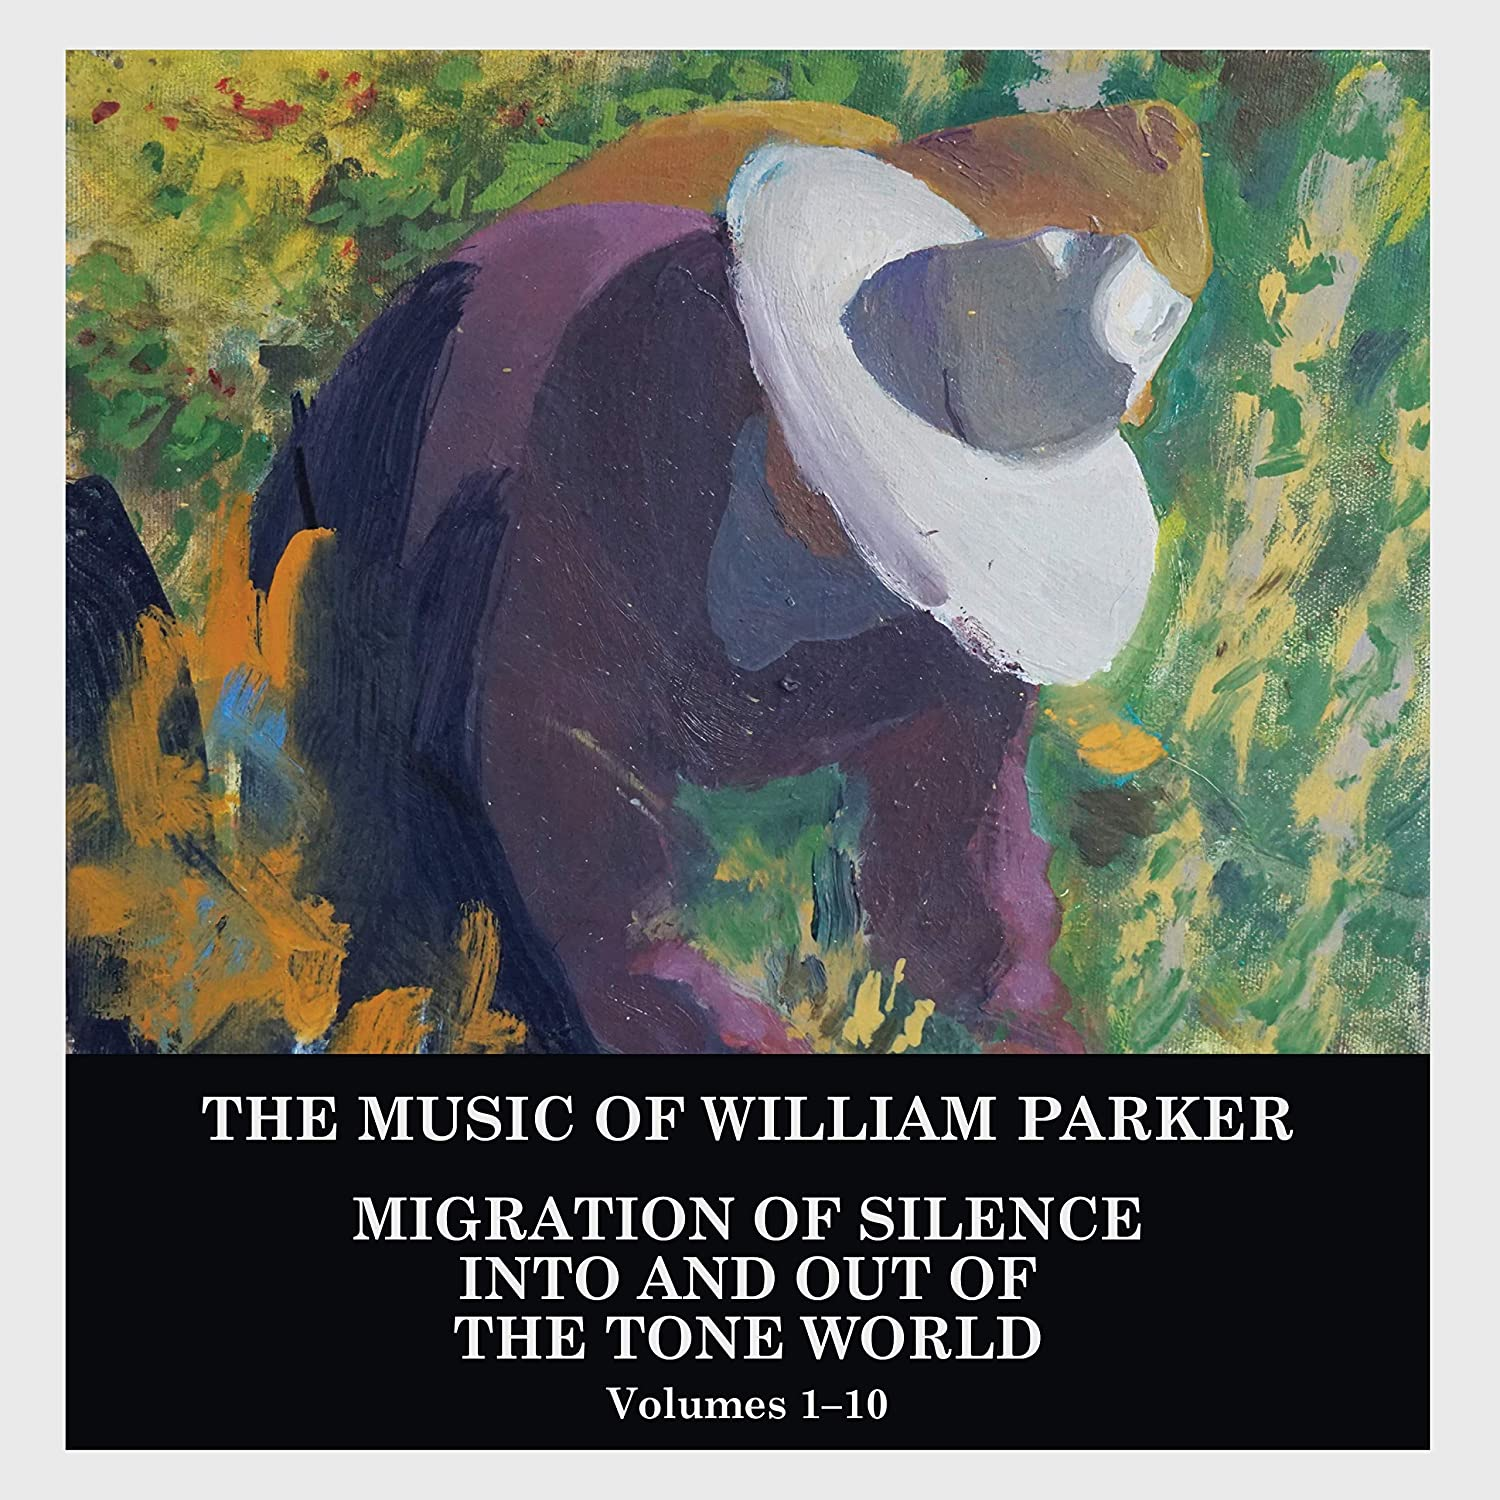 WILLIAM PARKER - Migration of Silence Into and Out of The Tone World (Volumes 1-10) cover